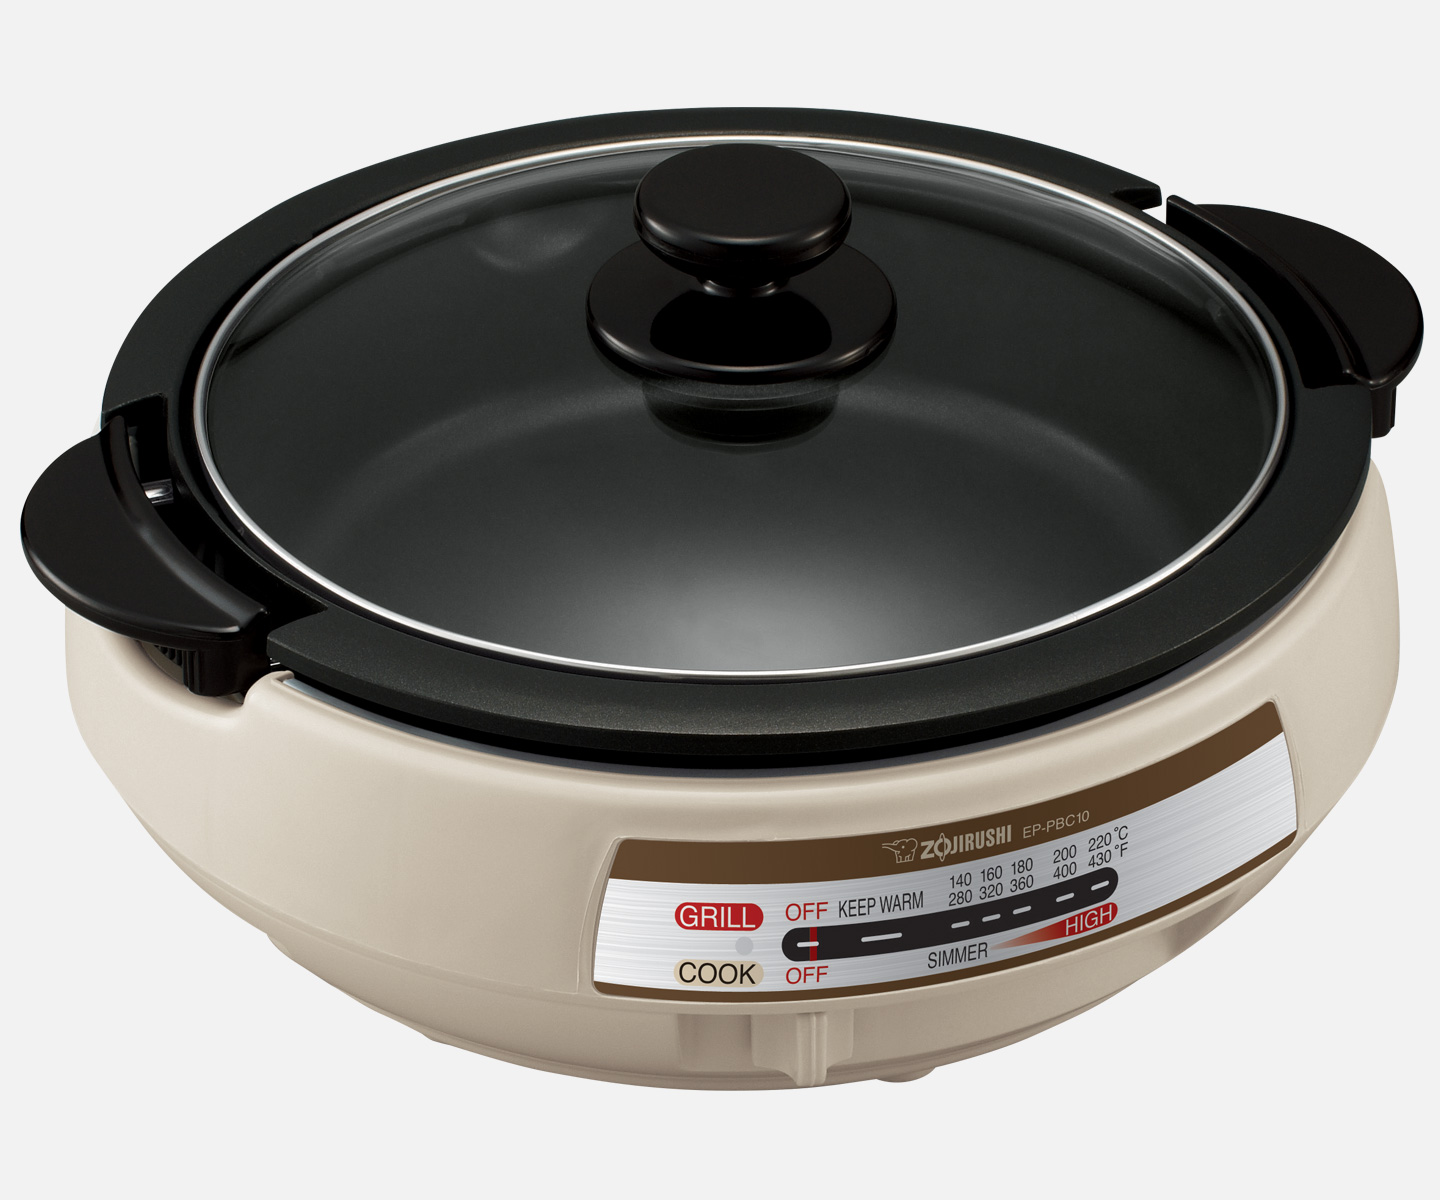 how to use a zojirushi rice cooker instructions